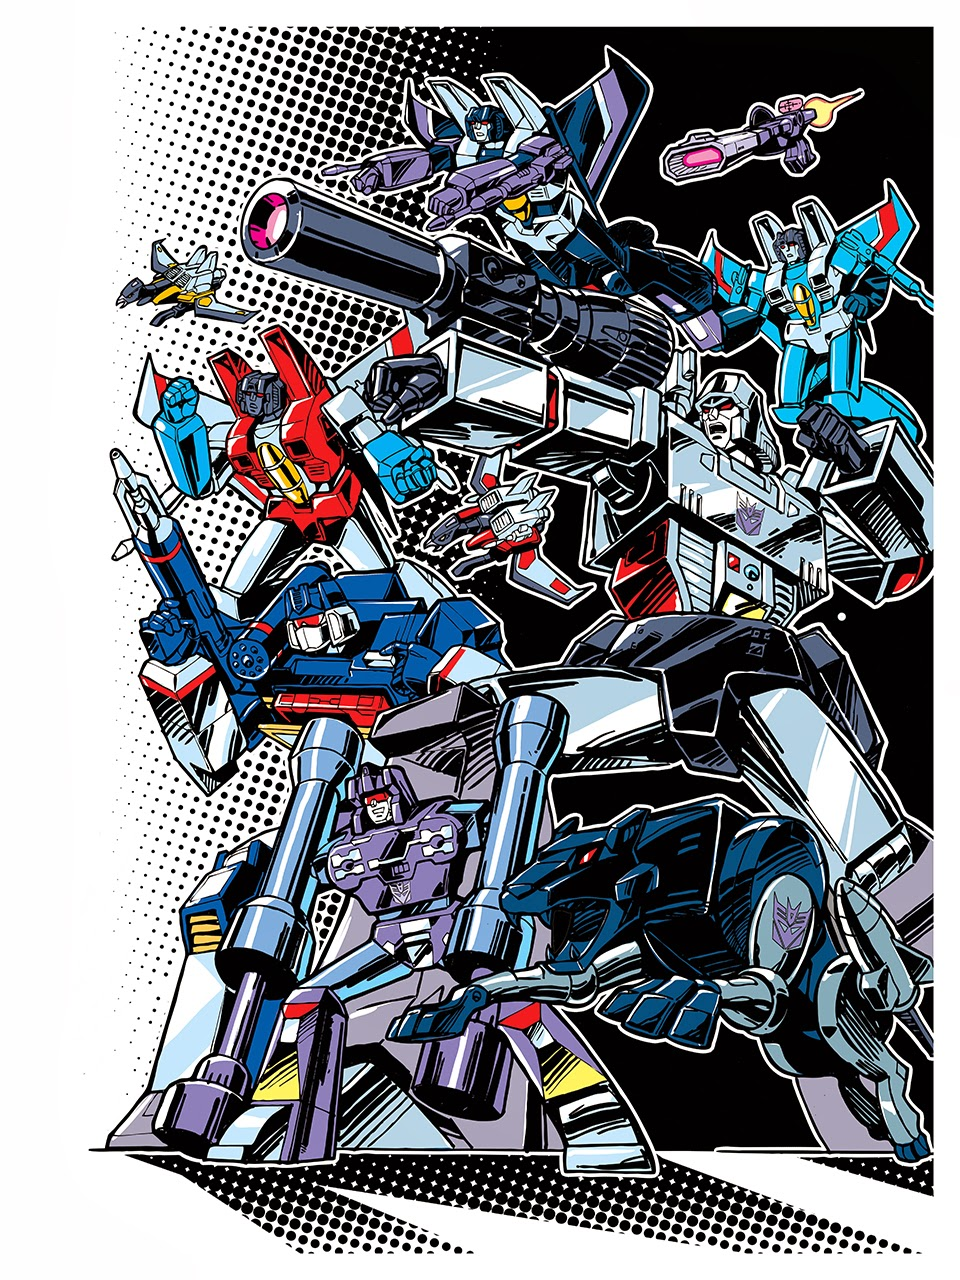 """Decepticons"" Transformers 30th Anniversary Giclee Print by Guido Guidi"